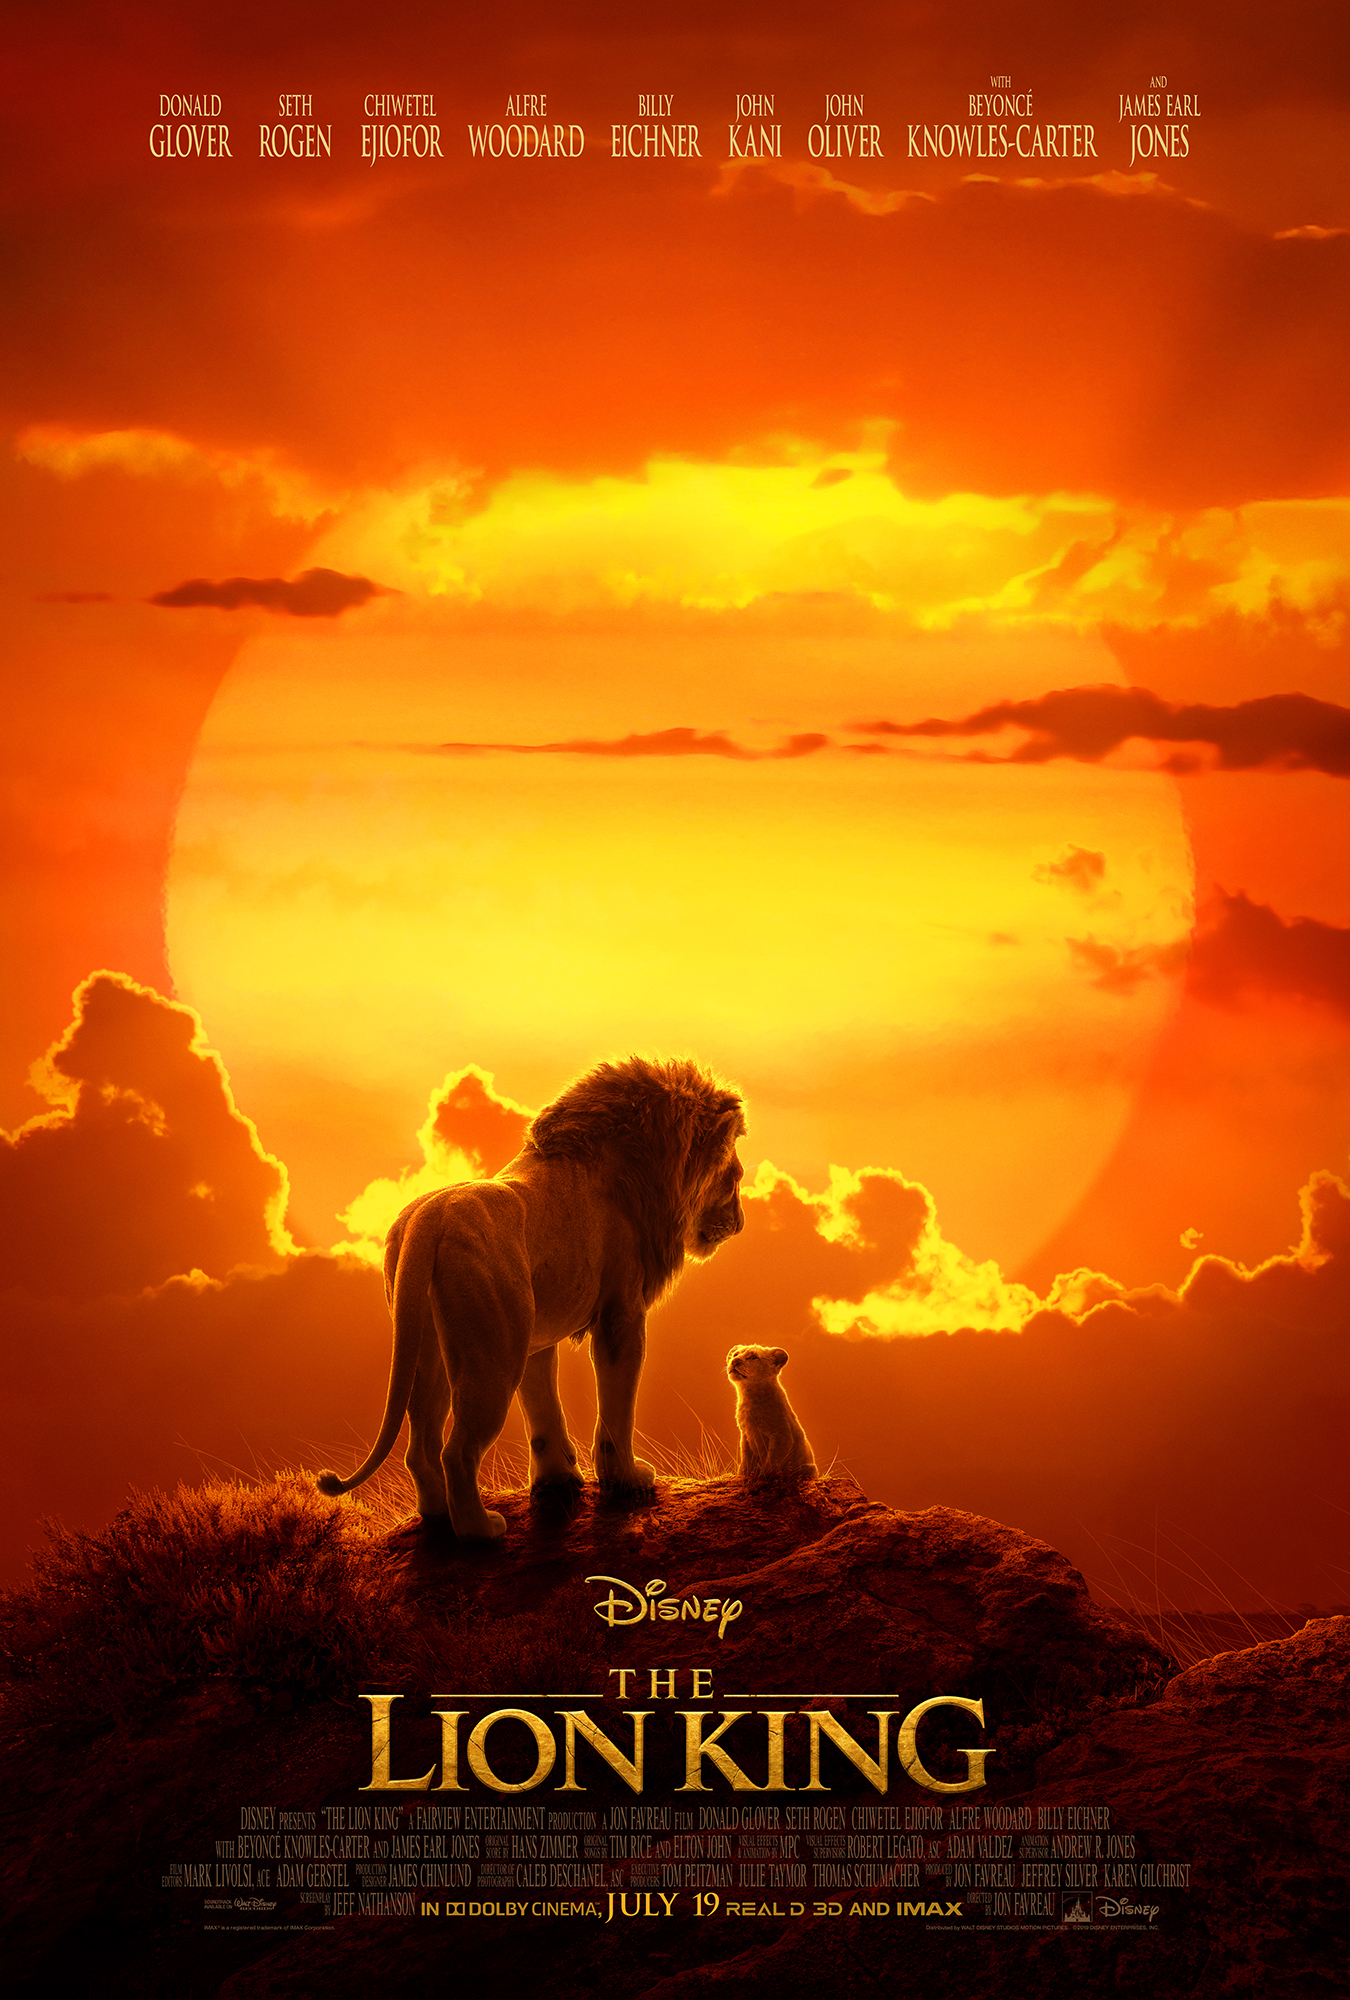 TheLionKing_Payoff_Dolby_mech2_FS_100dpi.jpg